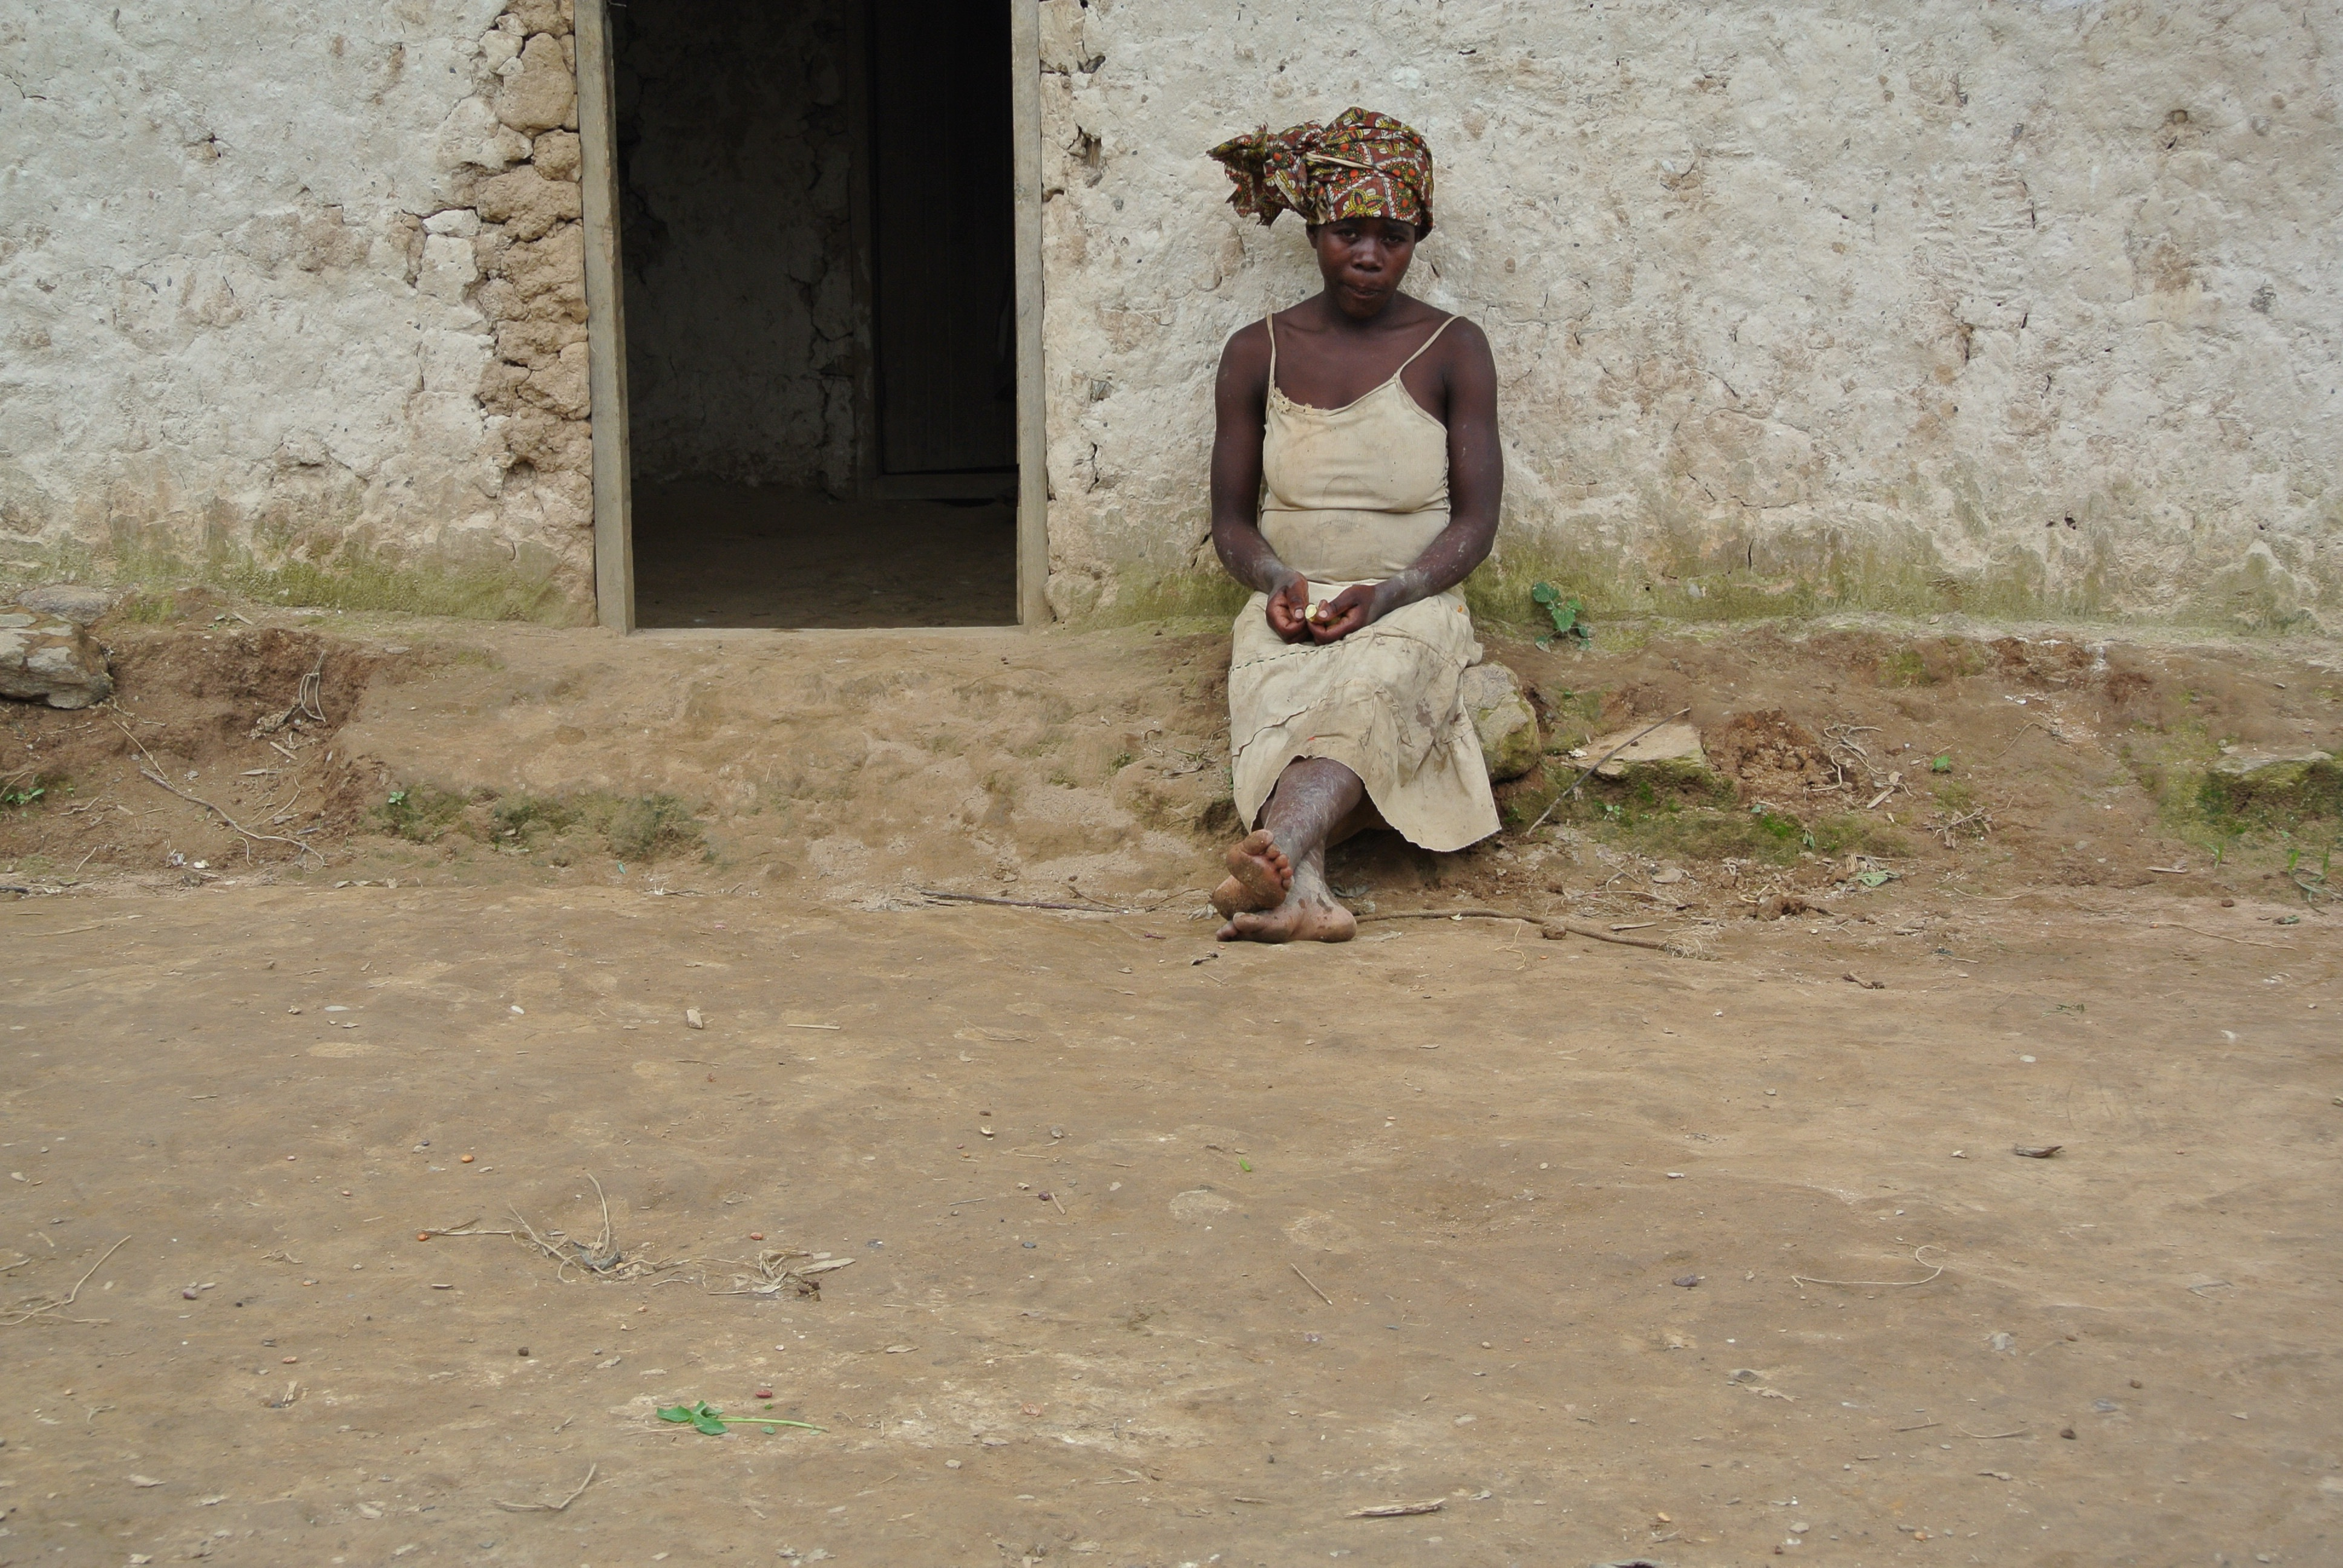 Woman from forest community, Uganda